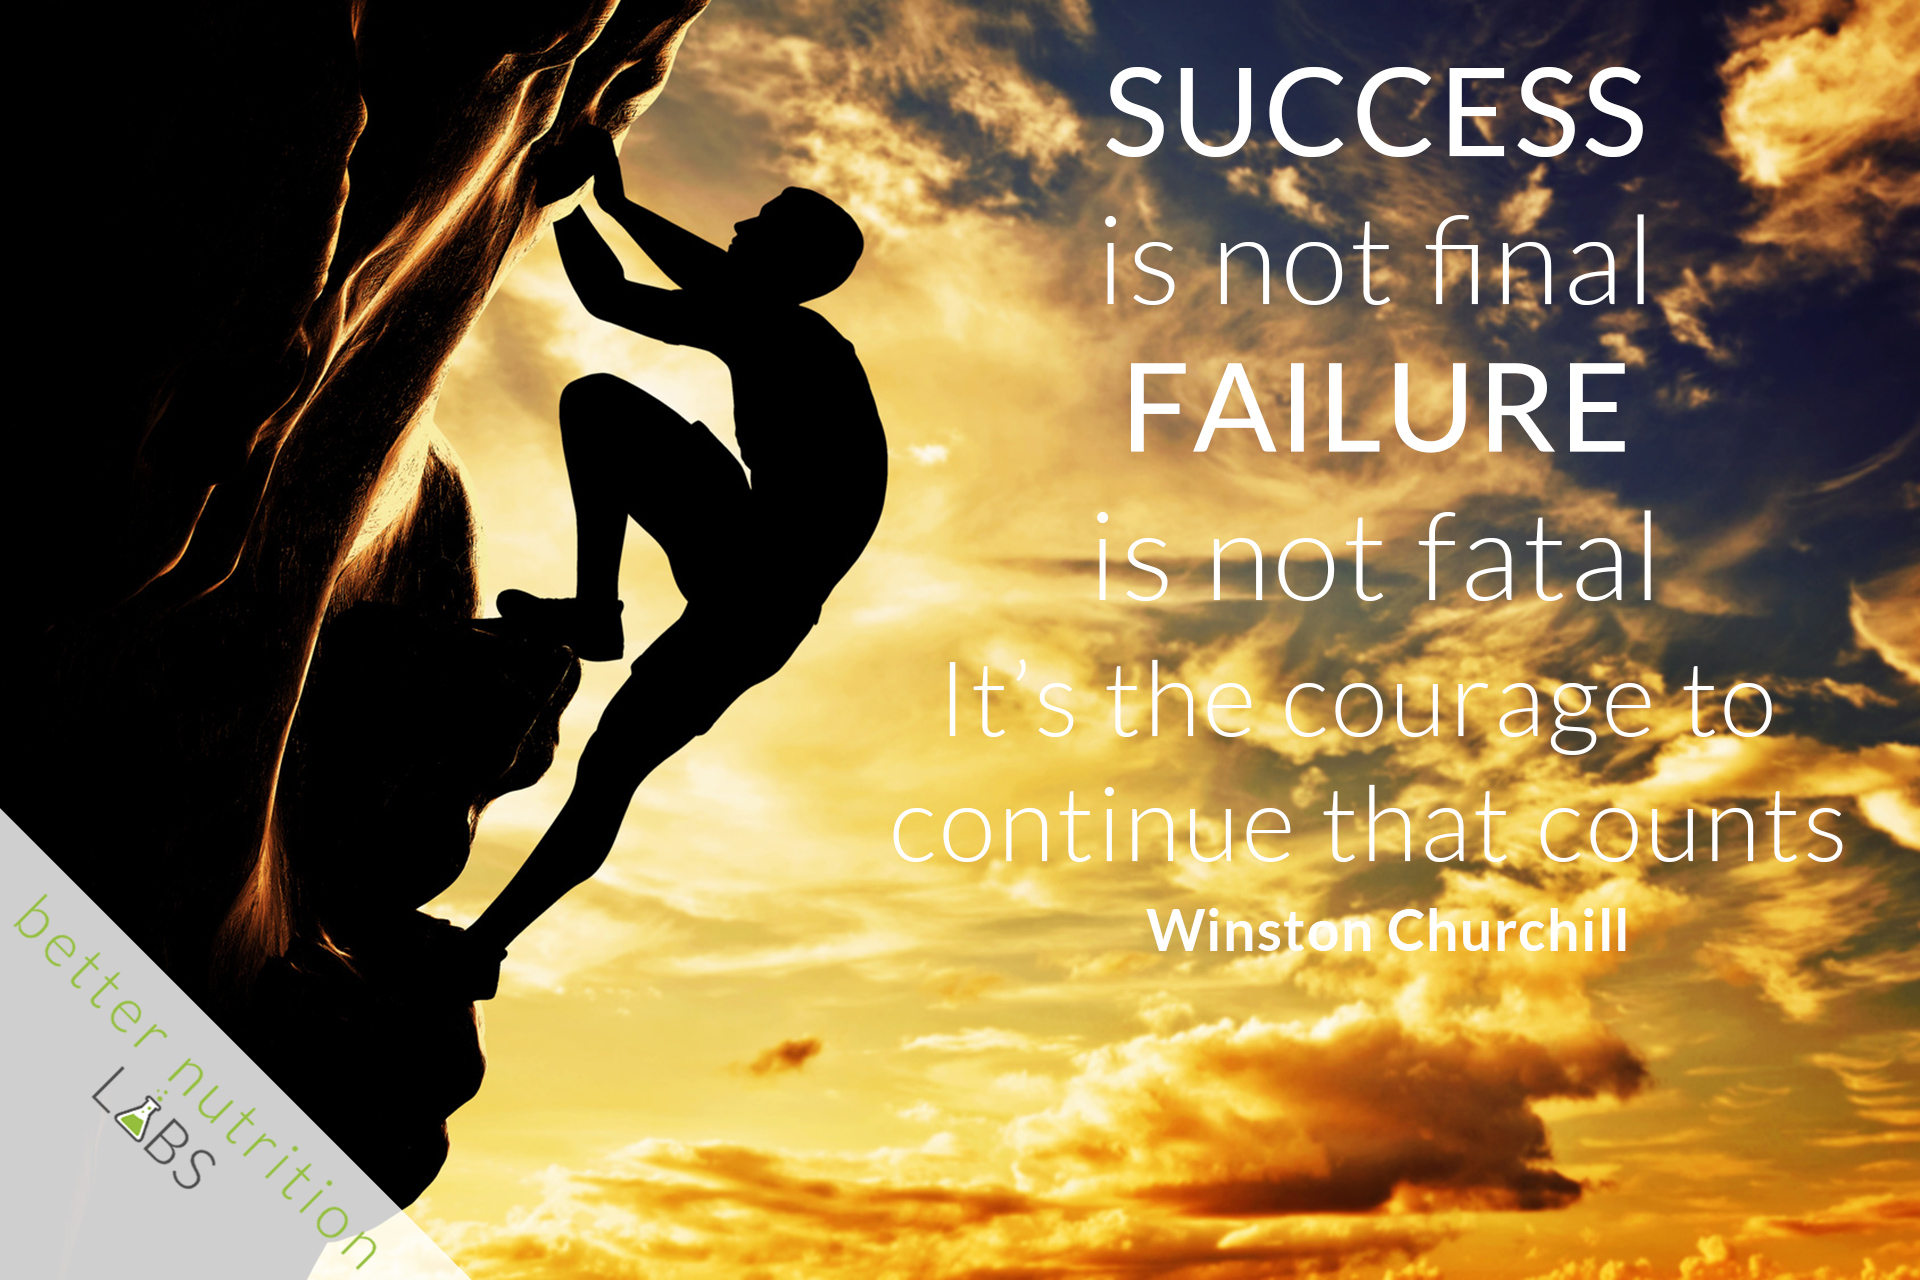 Success Quotes Hd Wallpapers 1080p Courage Is Not Final Failure Is Not Fatal Winston